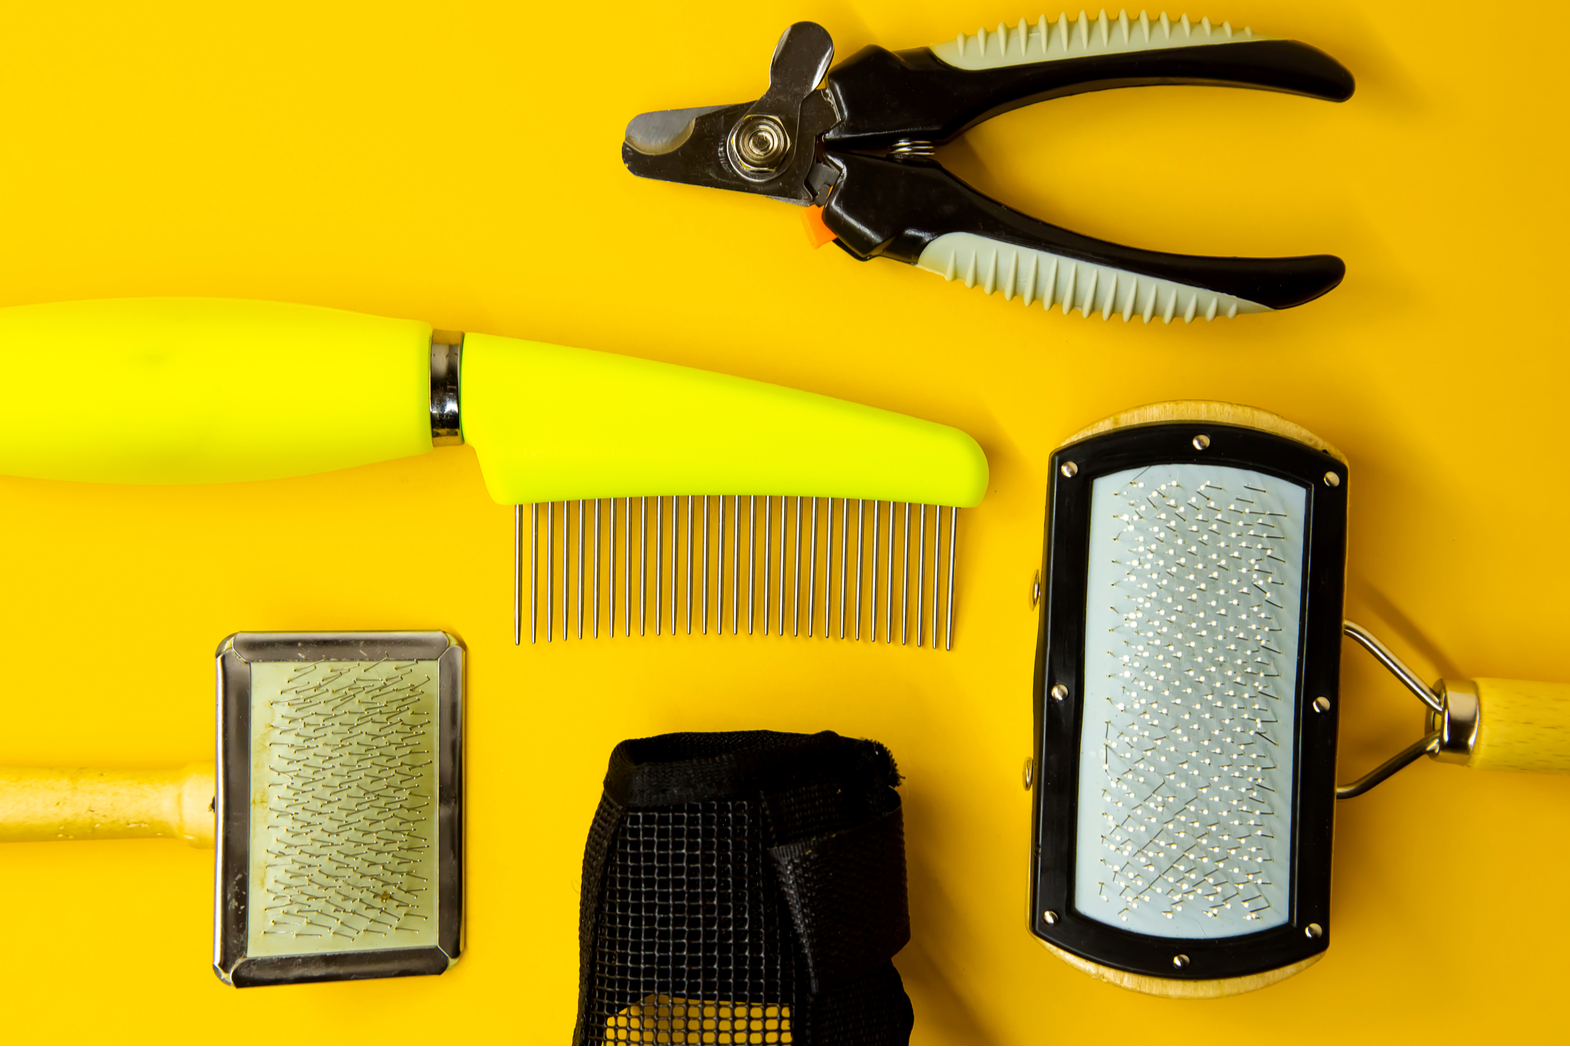 What are some must have tools for dog groomers?